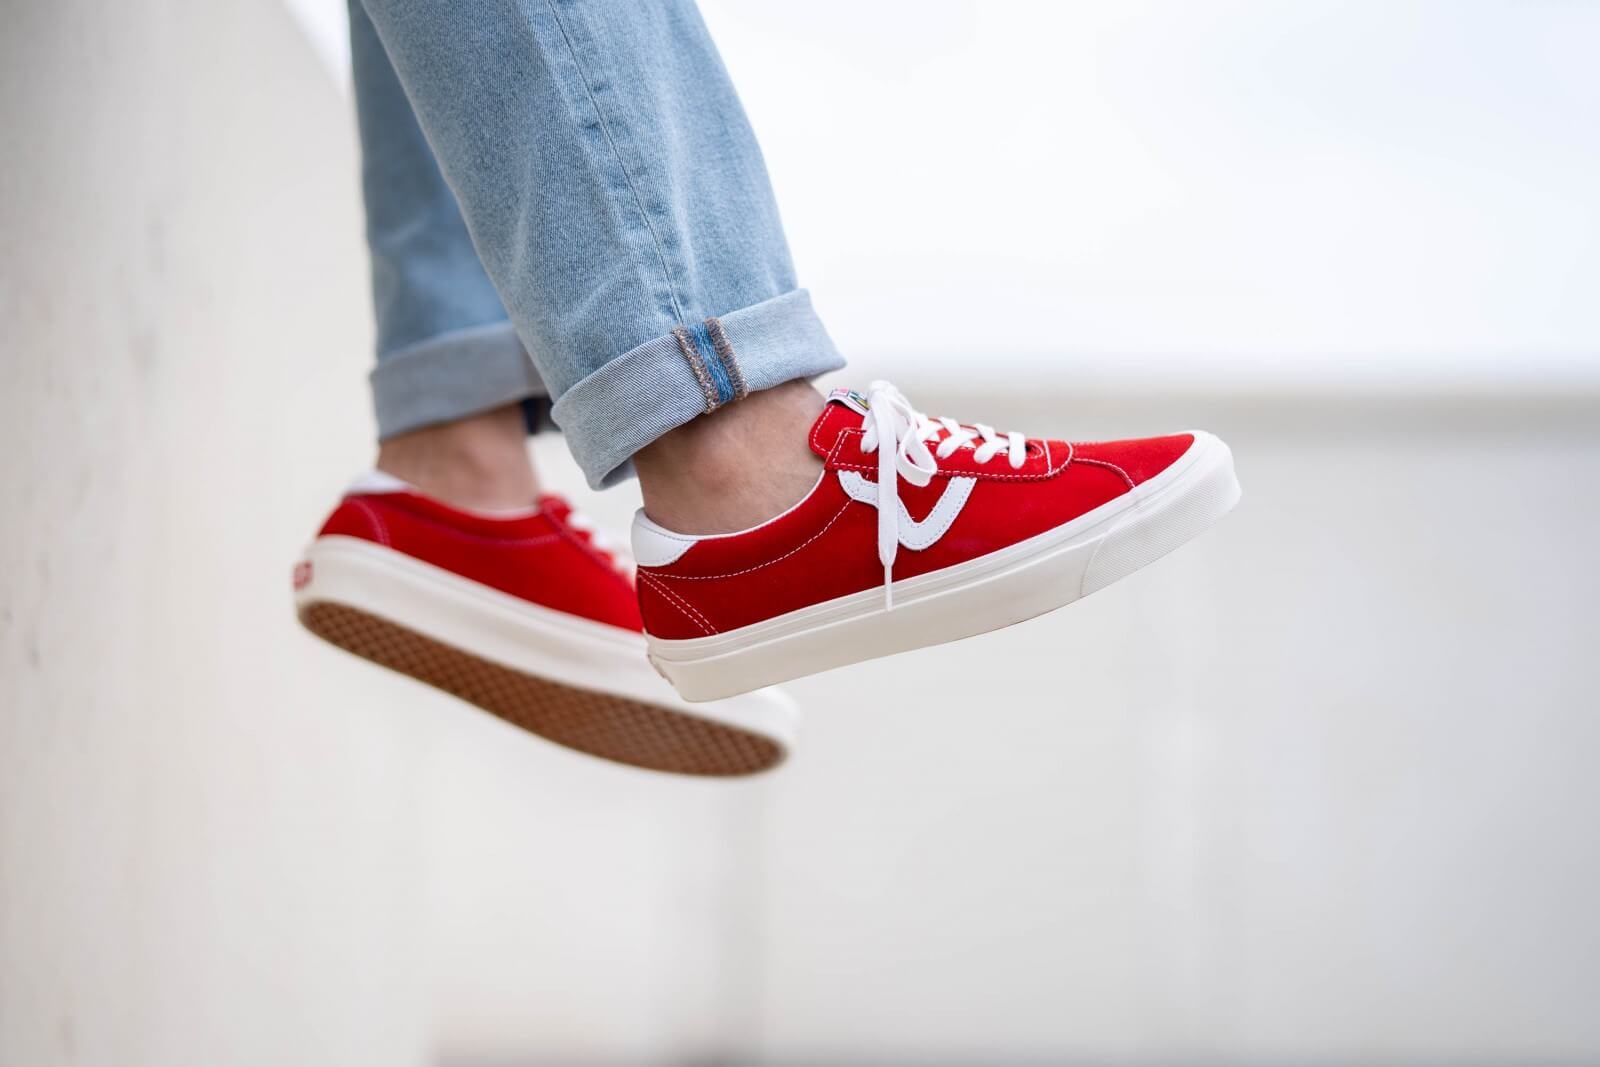 Vans Style 73 DX Anaheim Factory OG RedWhite VN0A3WLQVTM